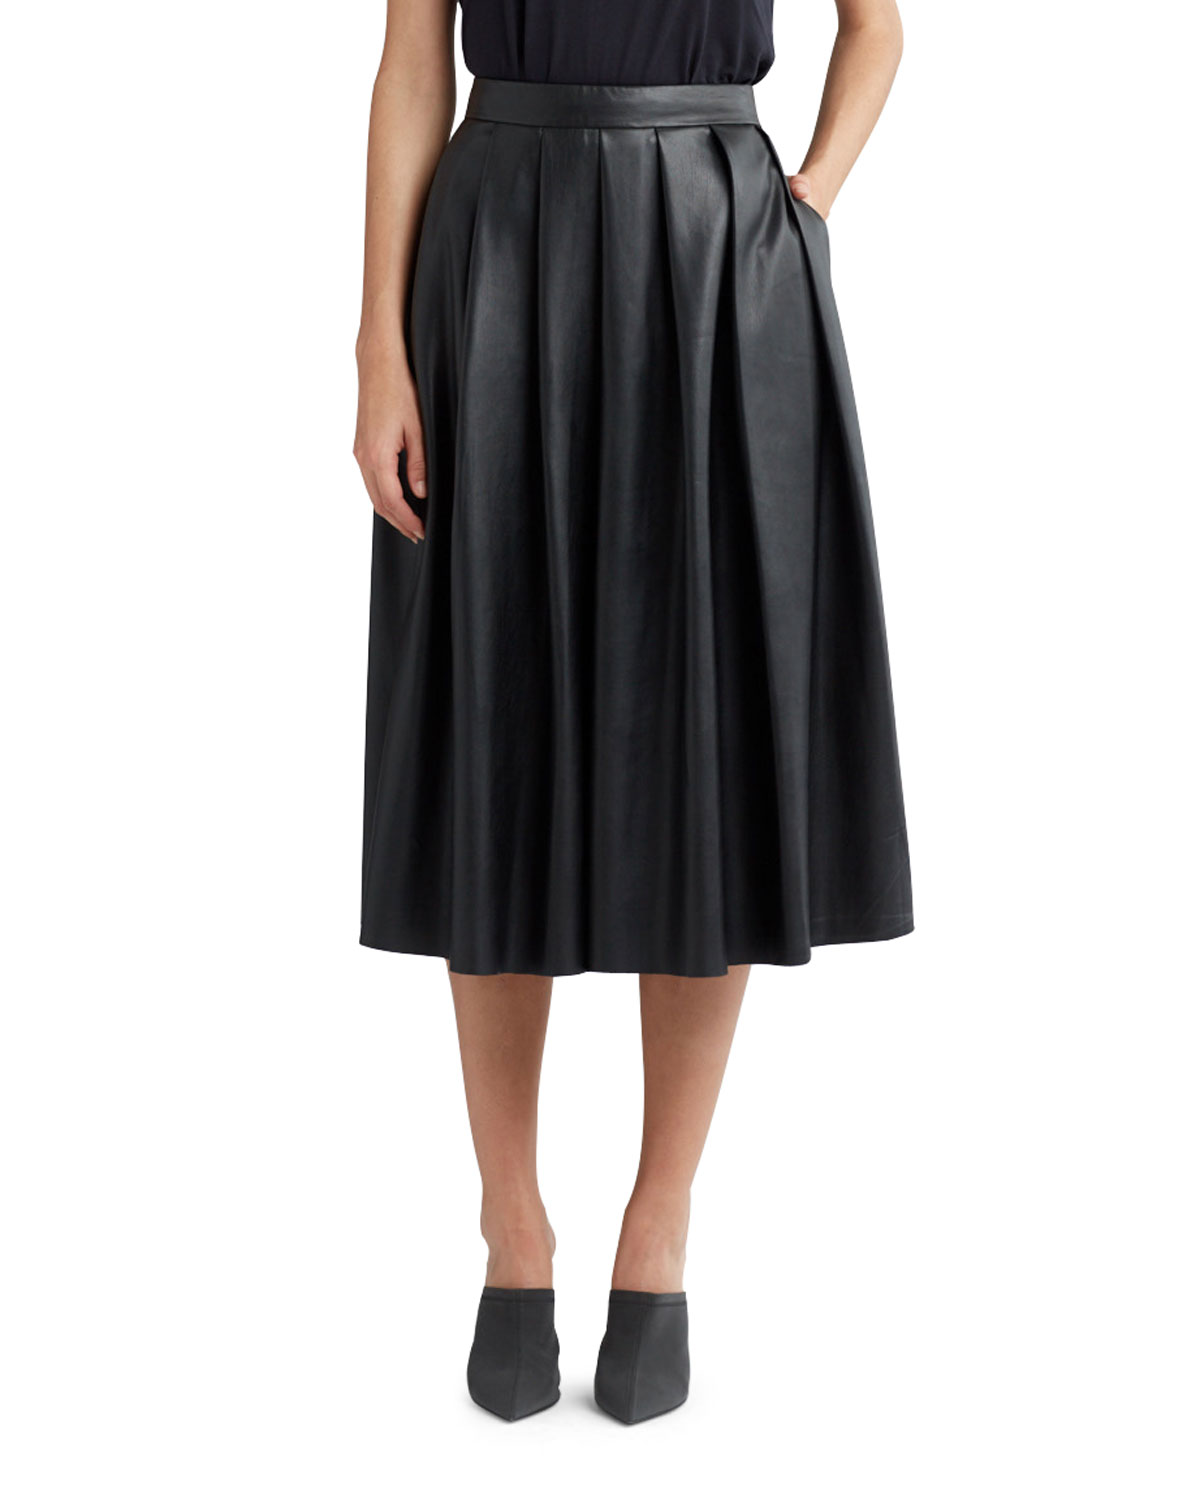 58293bfff6b How To Wash Faux Leather Skirt